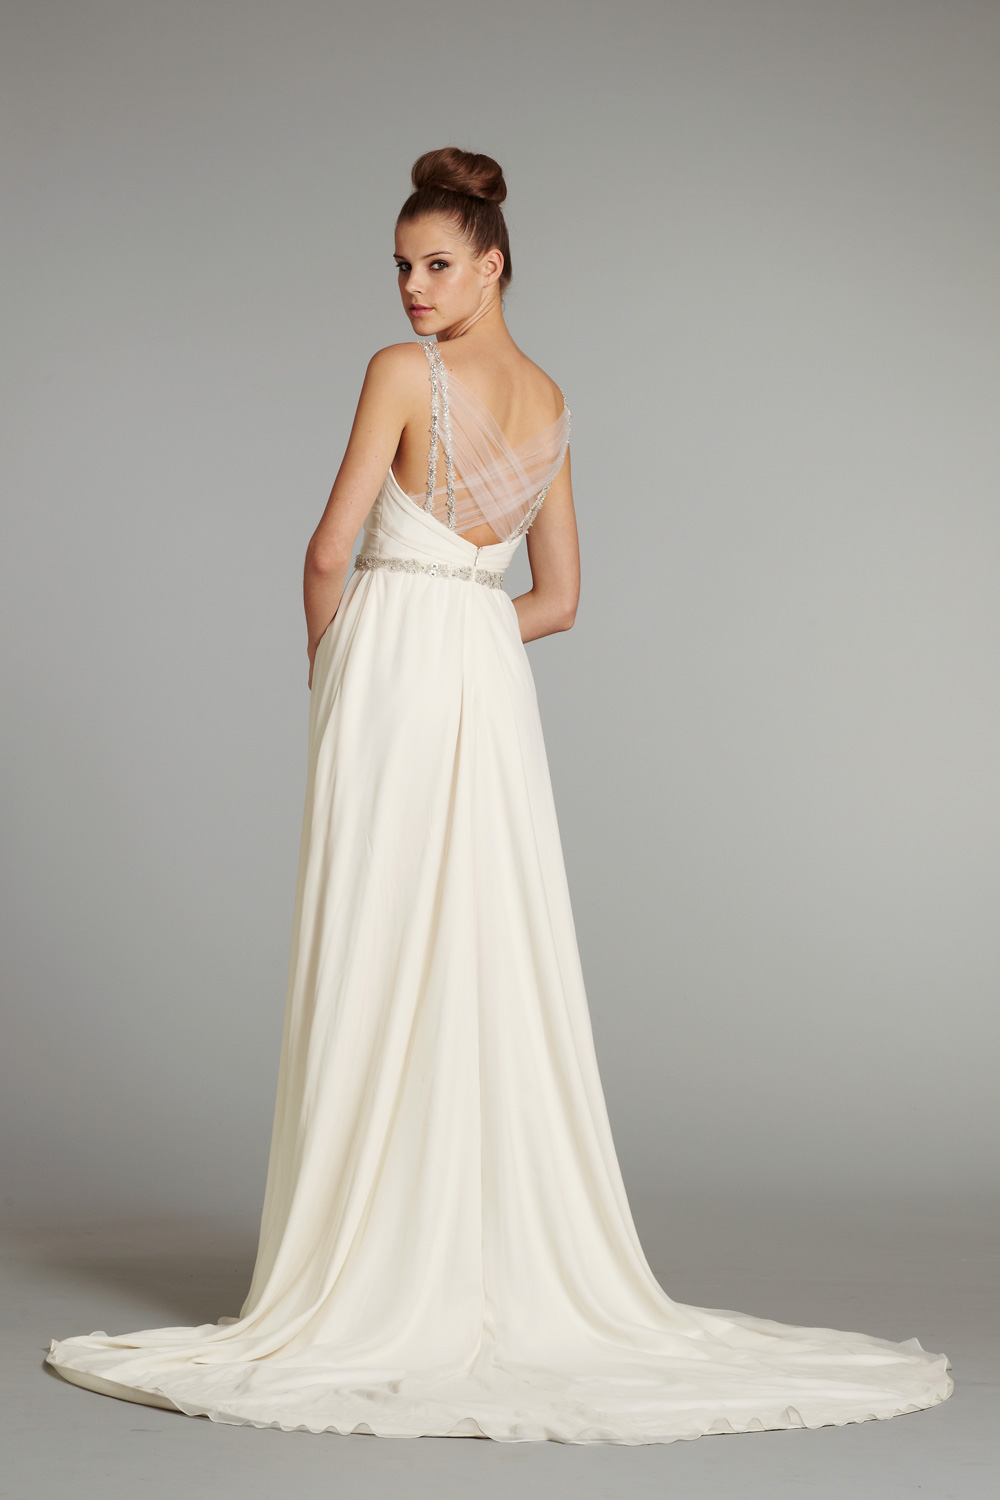 Fall Wedding Gowns : Fall wedding dresses viewing gallery